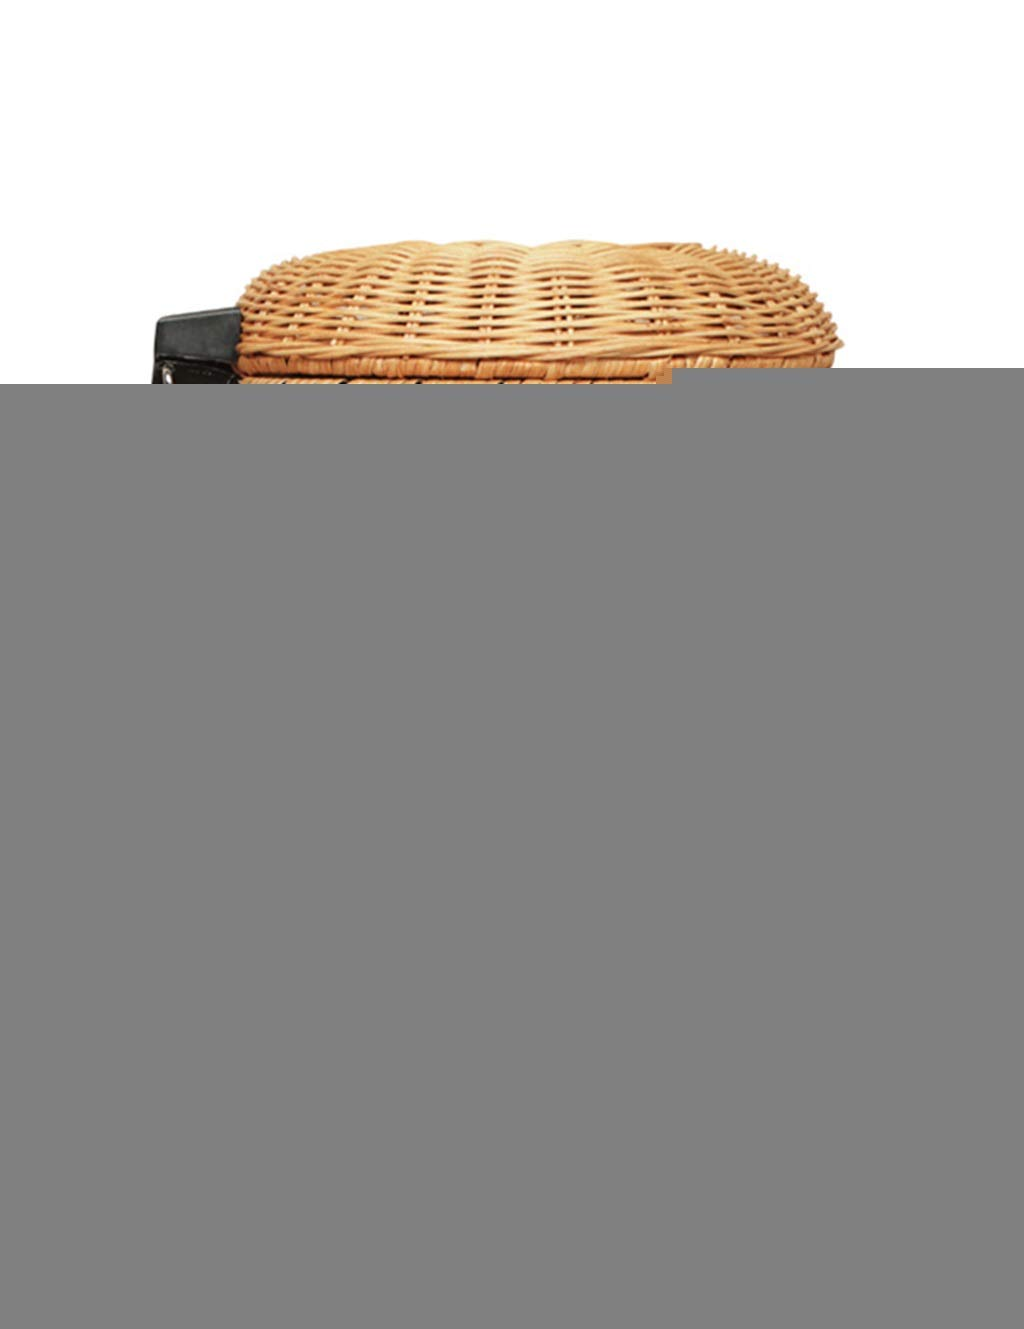 Liex- Creative Trash Can/Rattan Trash Can, Vintage Hand-Woven, Pedal Design, for Living Room Bedroom Hotel (Multi-Size Optional)